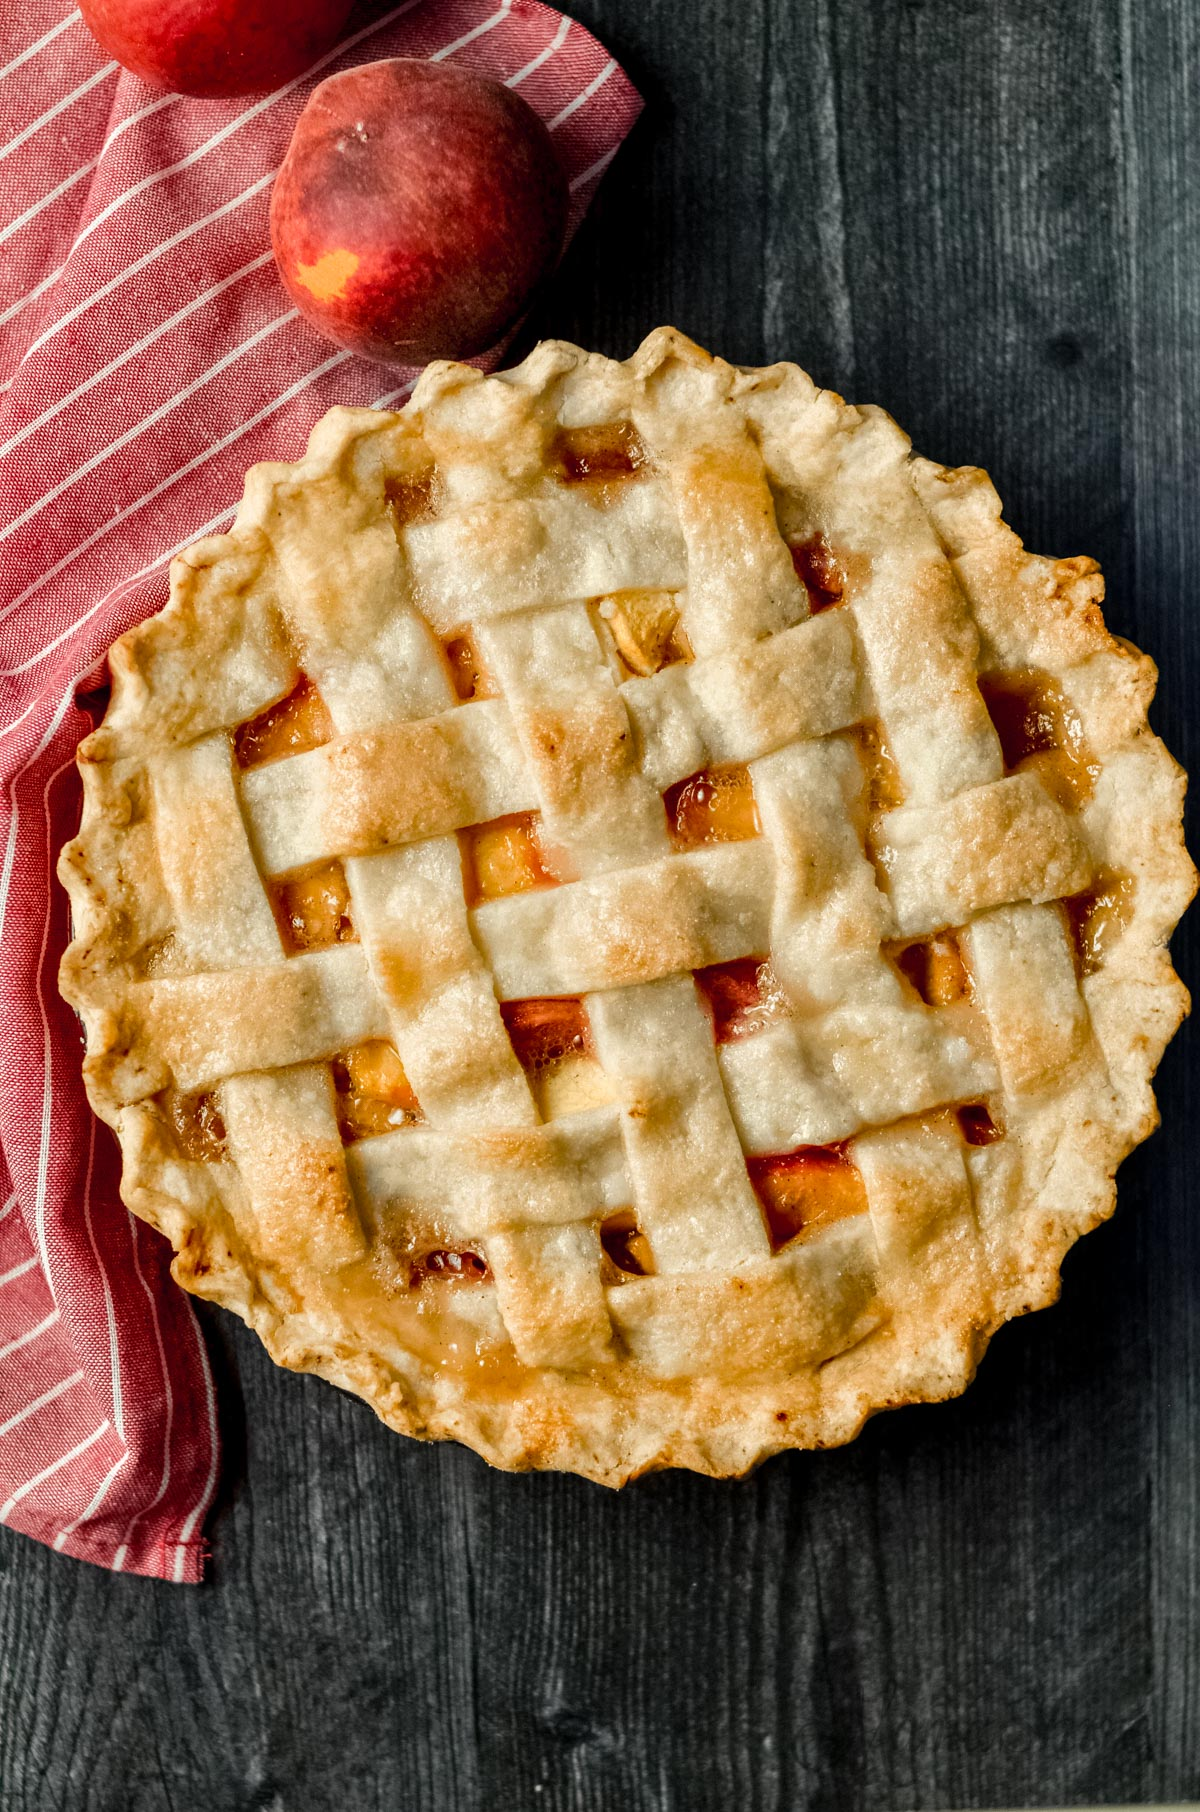 Gluten-free peach pie with a lattice top.